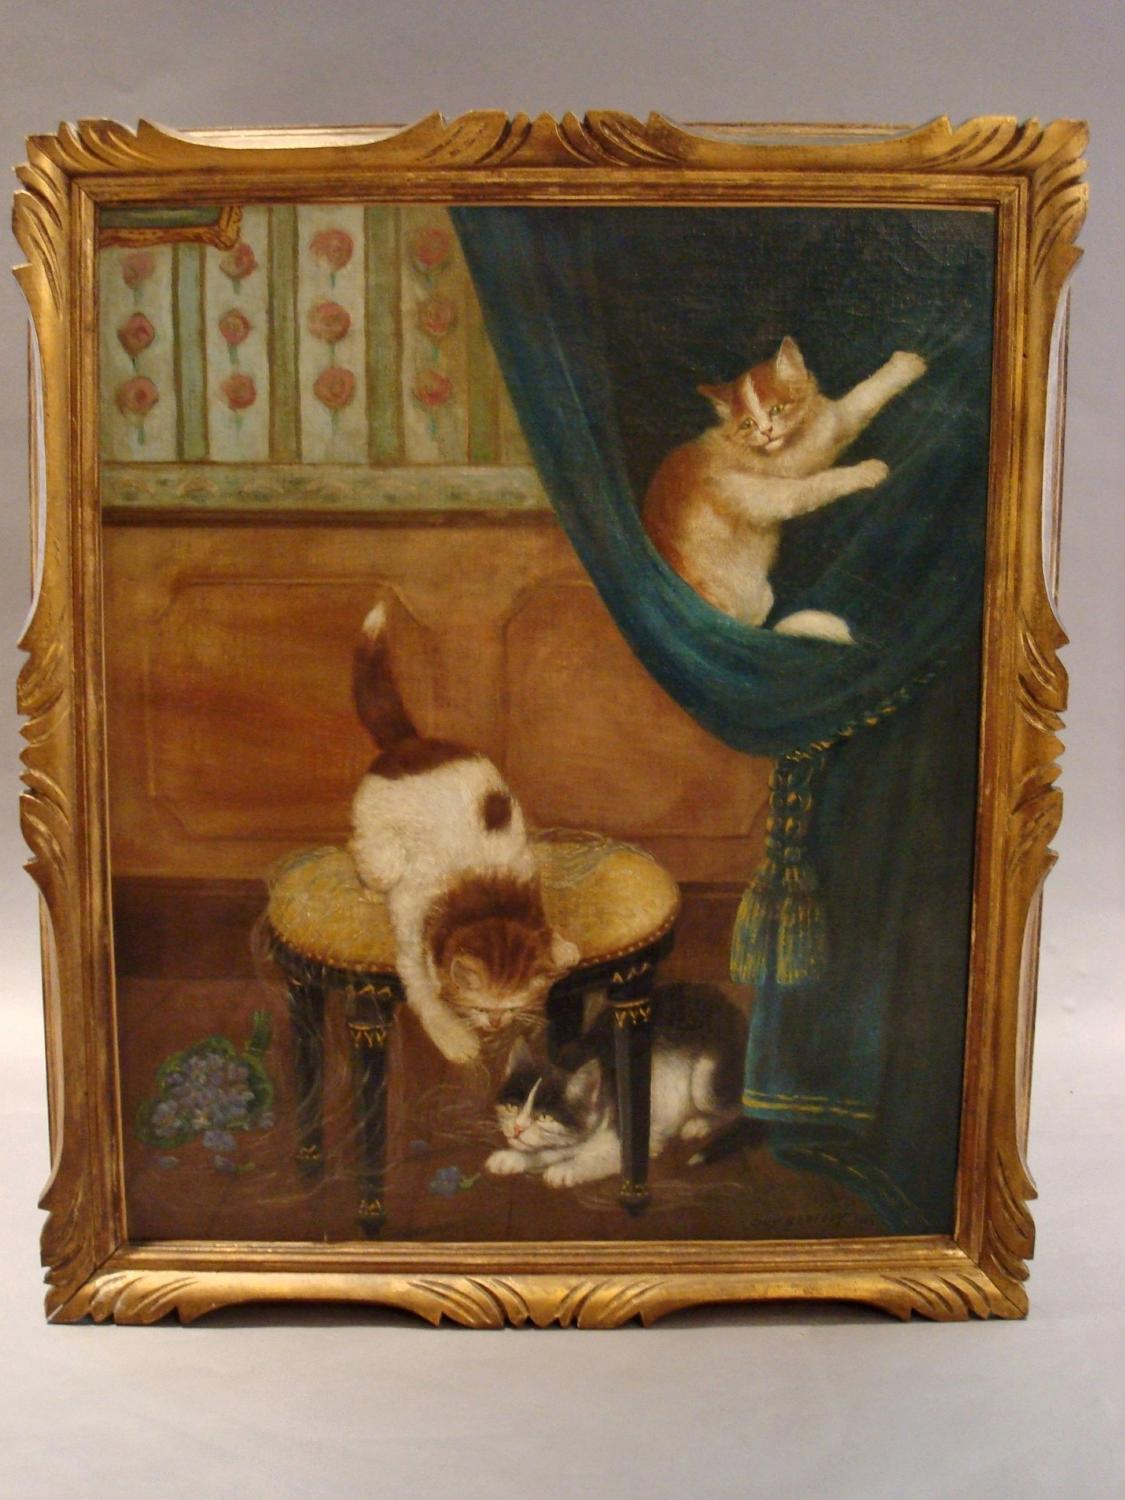 Oil painting of cats